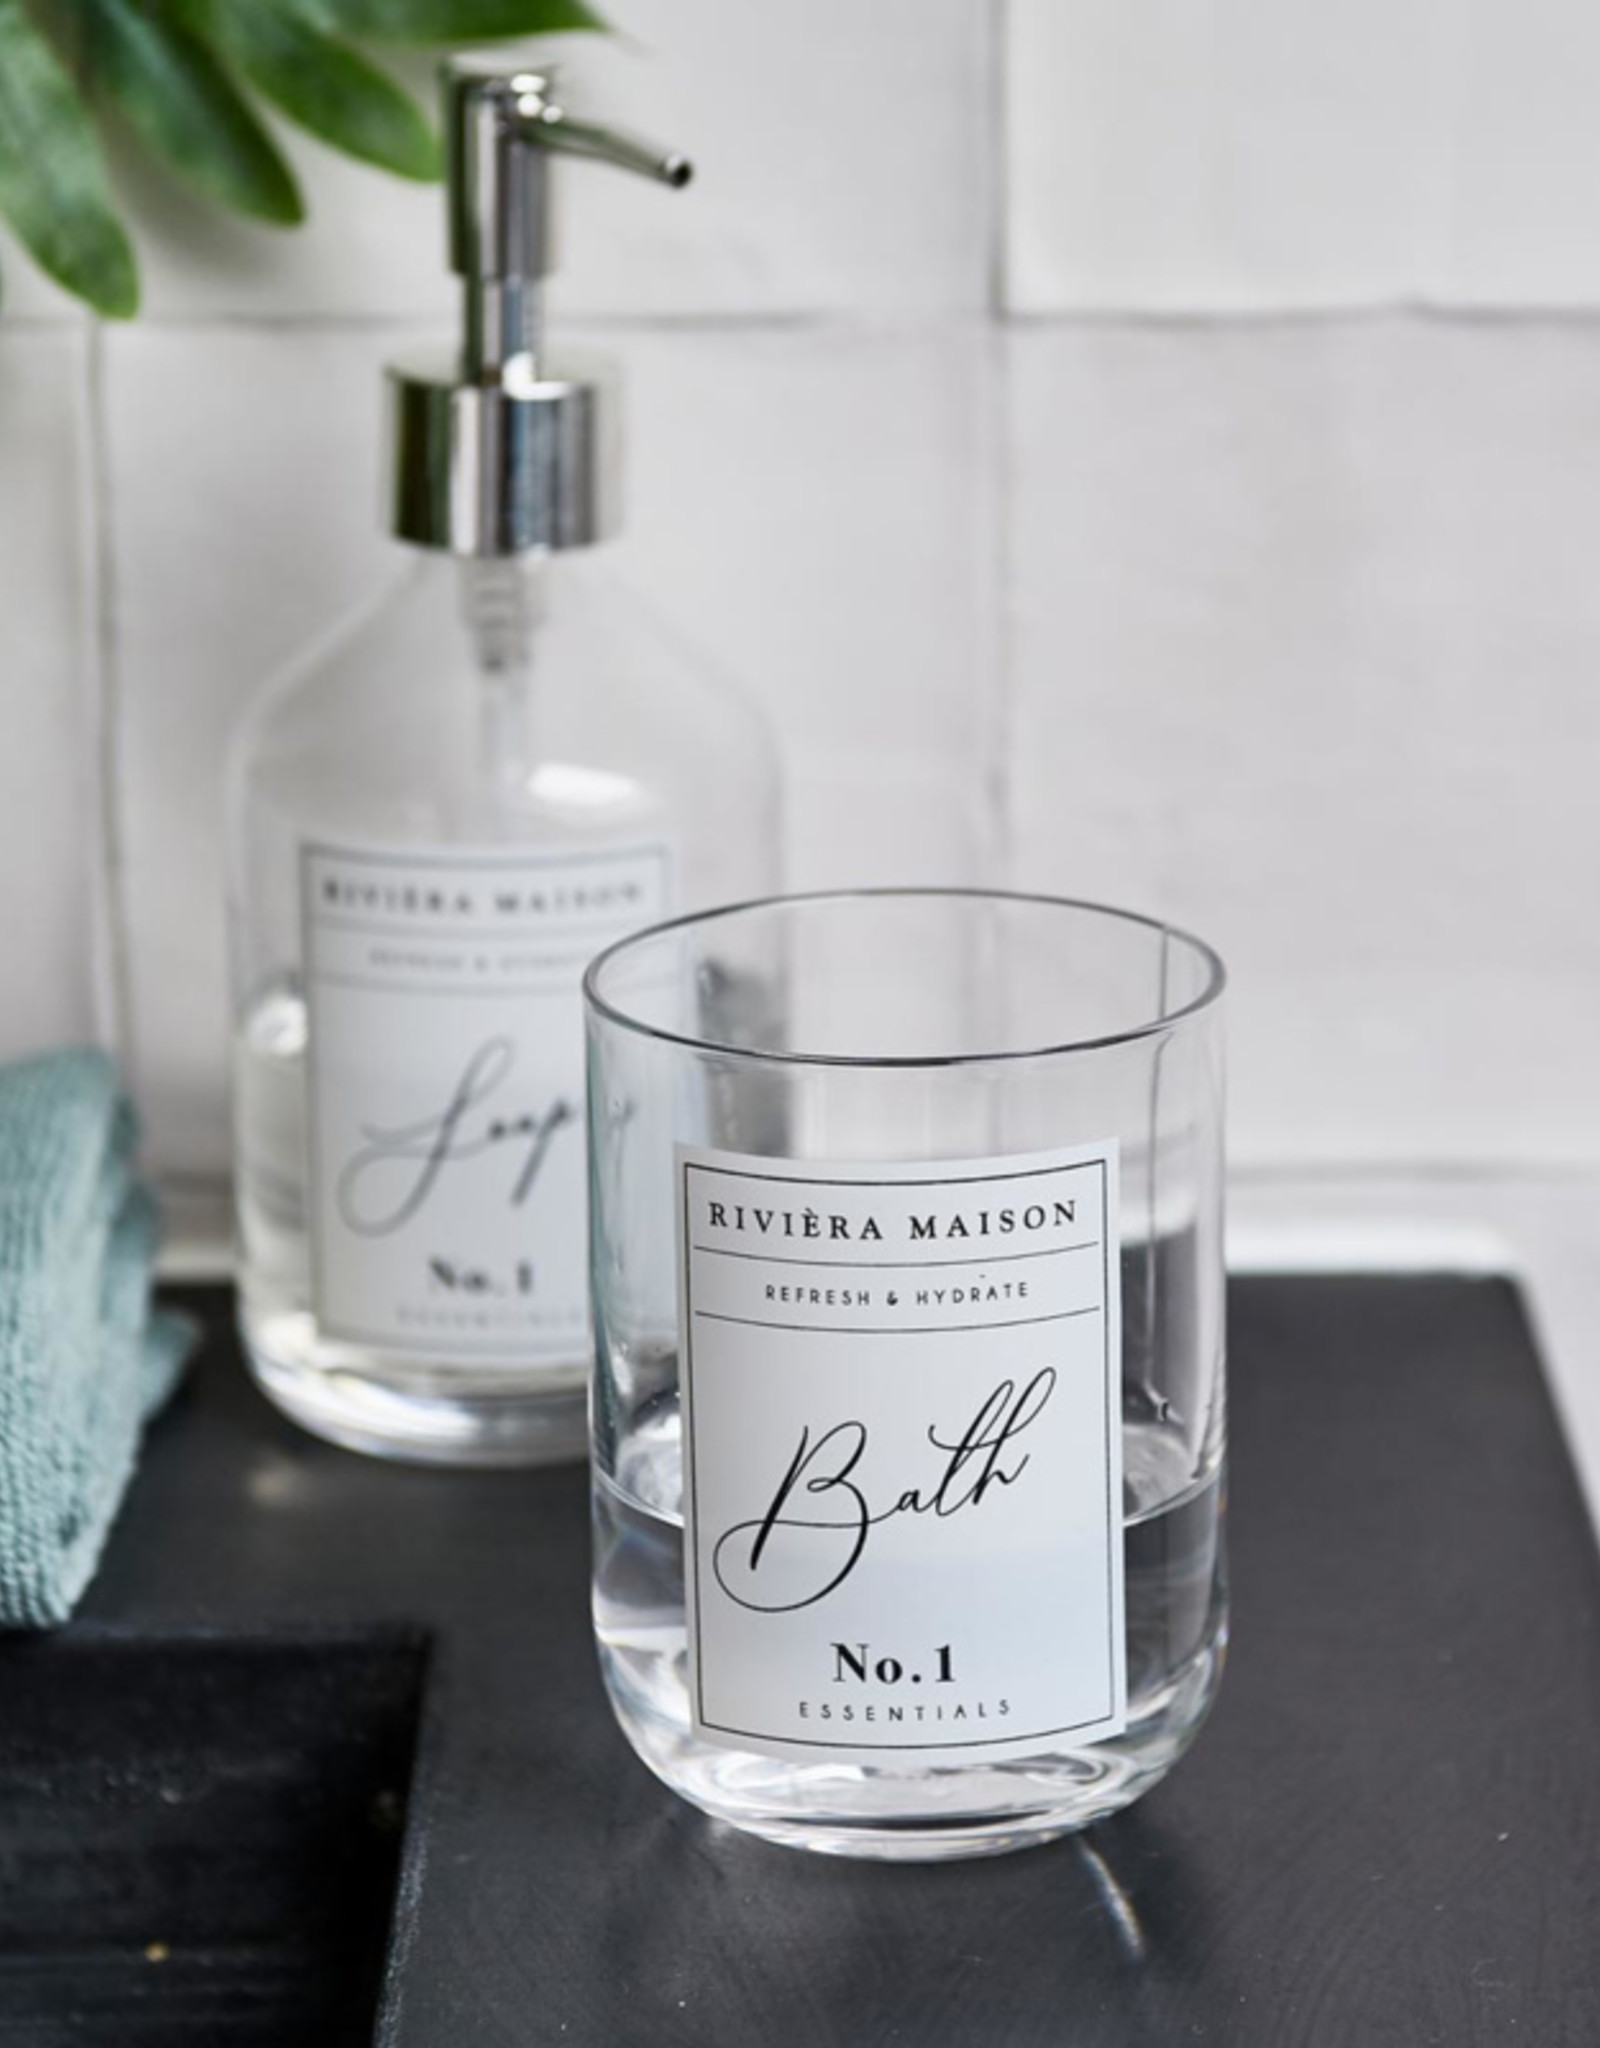 Riviera Maison Refresh & Hydrate Cup